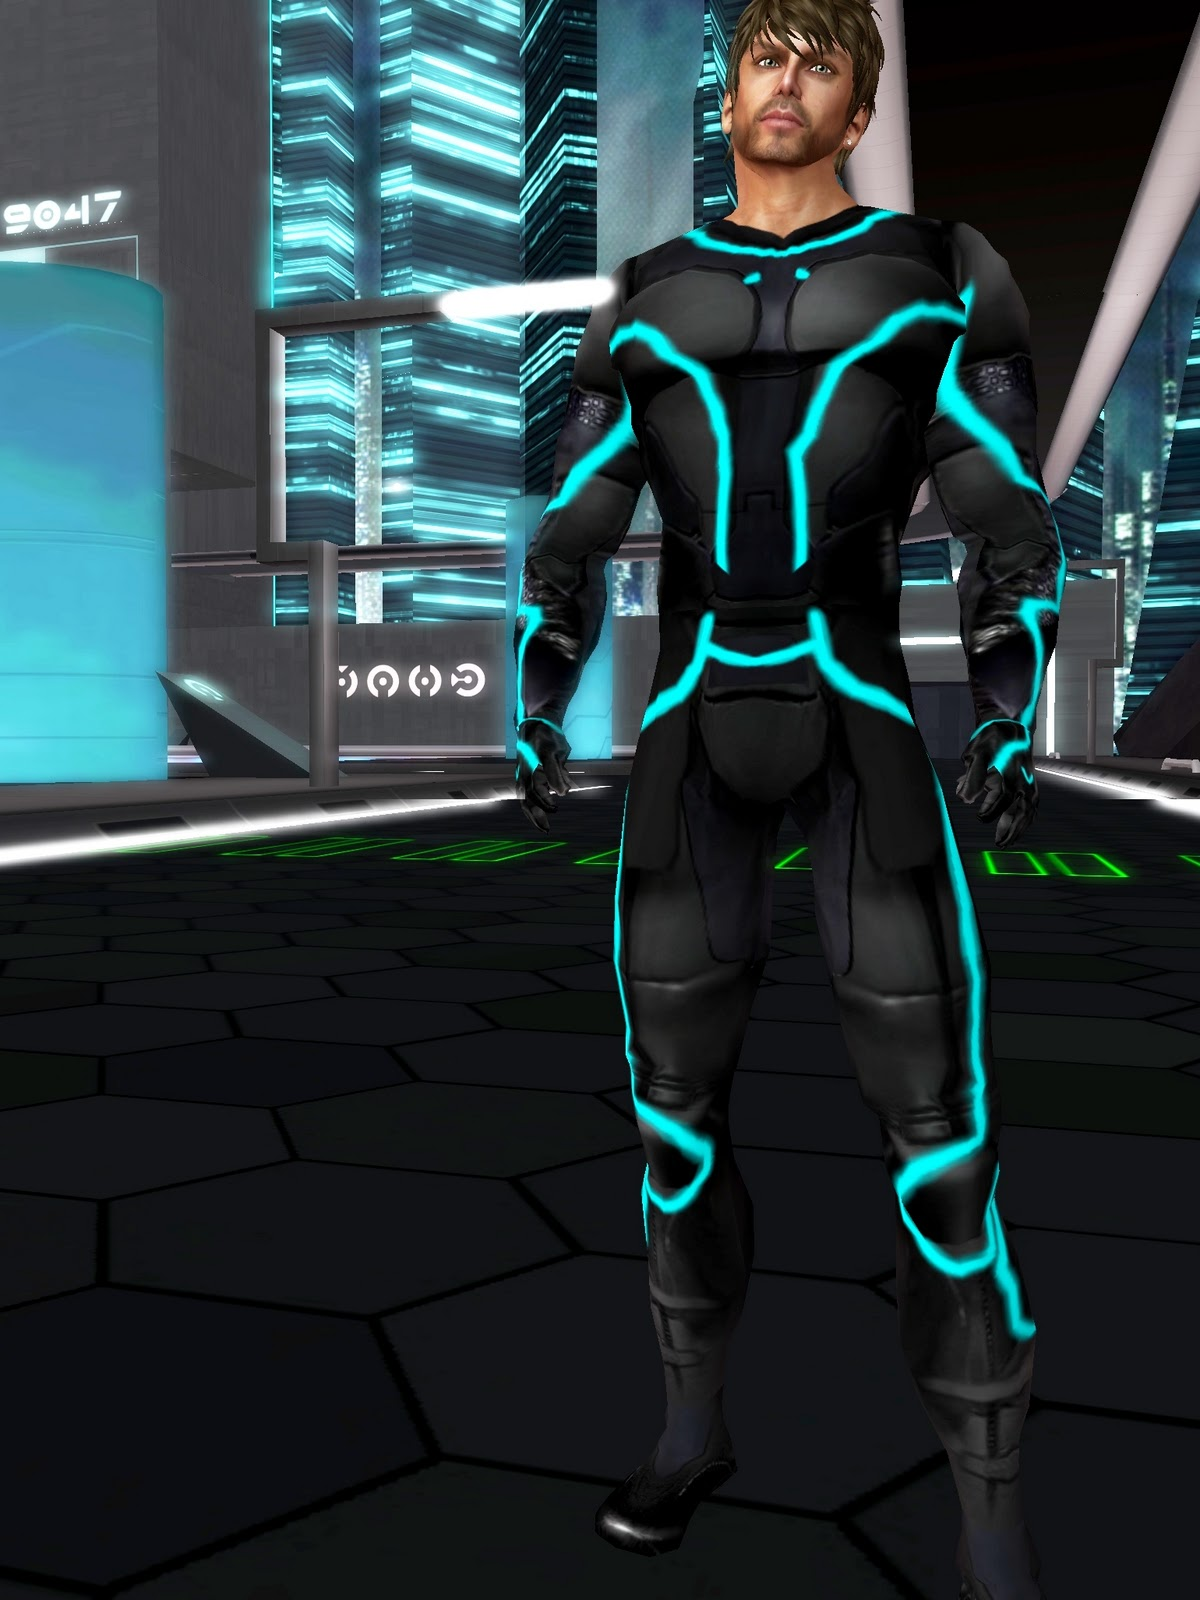 vmf blog  freebies for men    tron legacy outfit